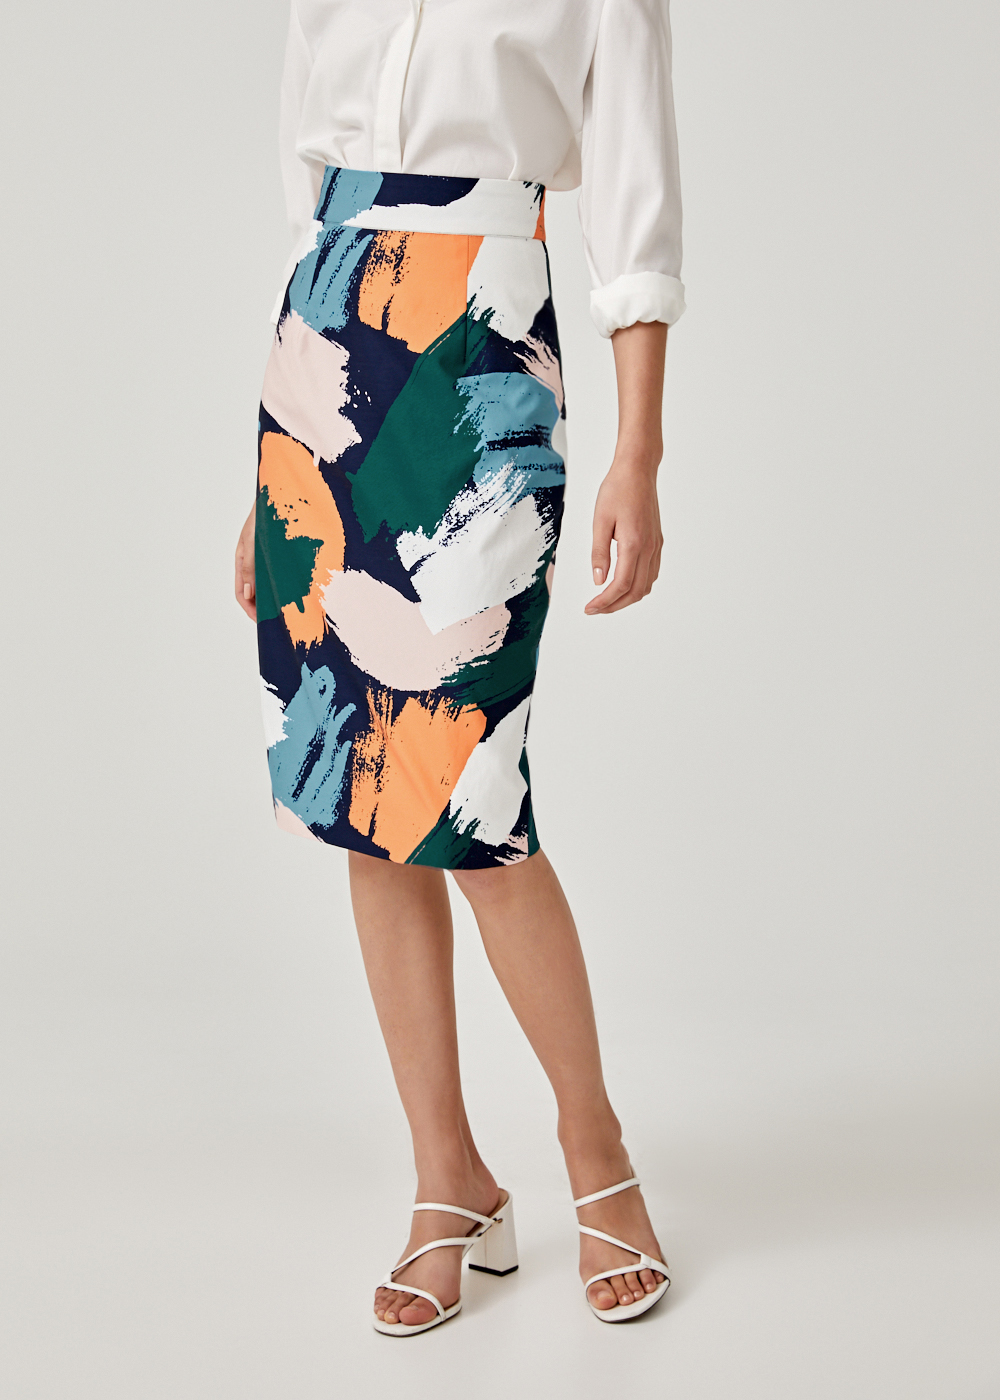 Laurensa Pencil Skirt in Artful Delight